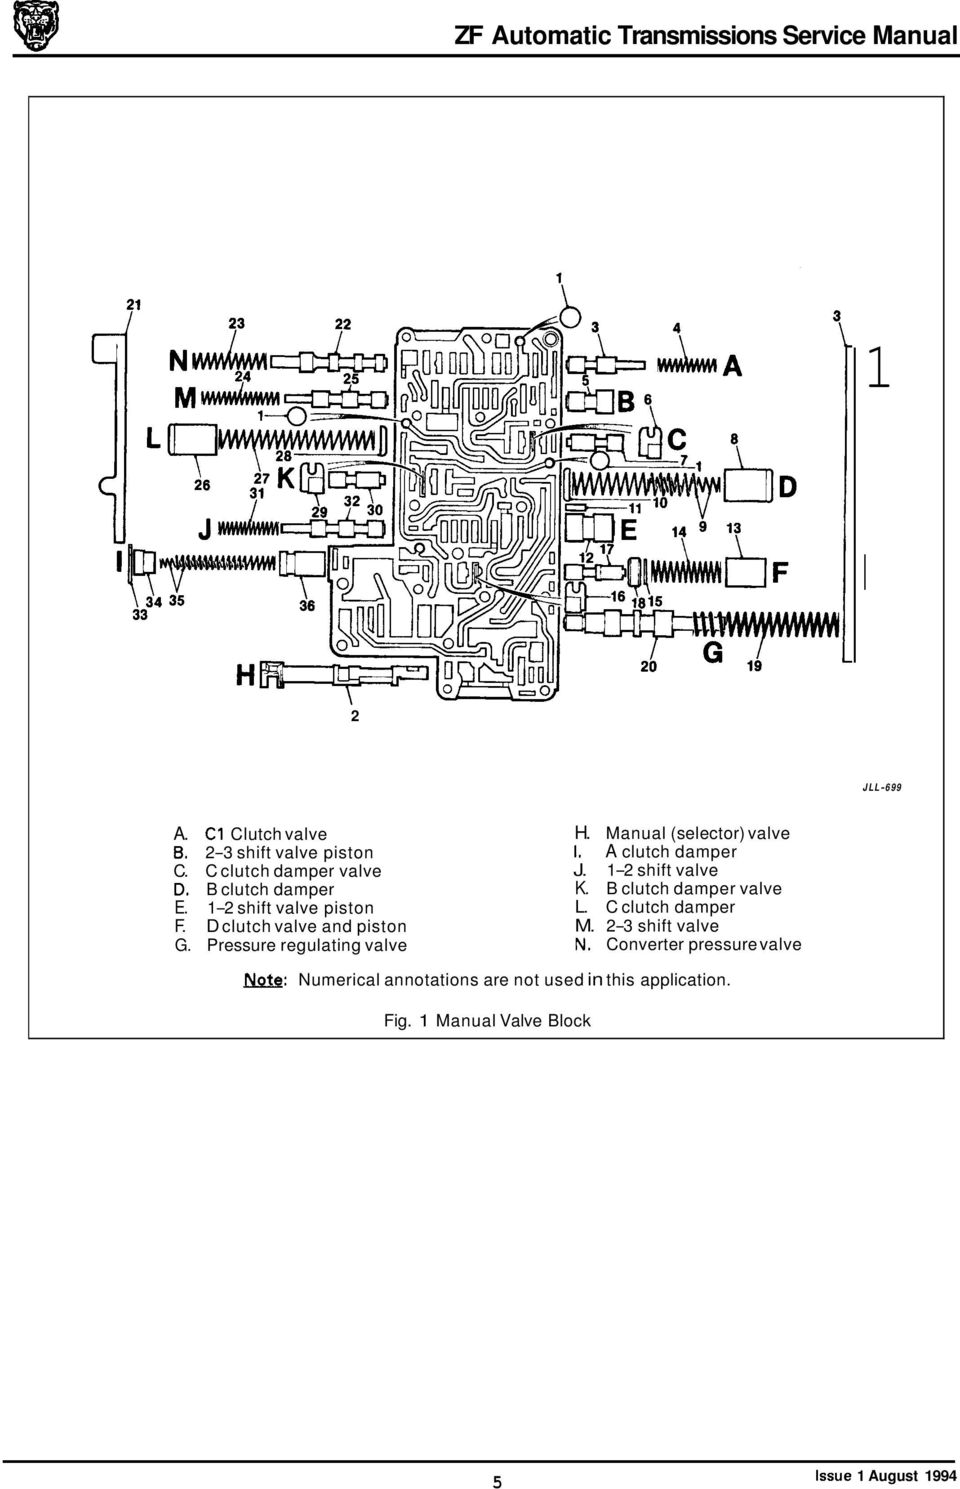 Automatic Transmissions Service Manual Pdf 48re Throttle Valve Actuator Wiring Diagram Selector A Clutch Damper J 1 2 Shift